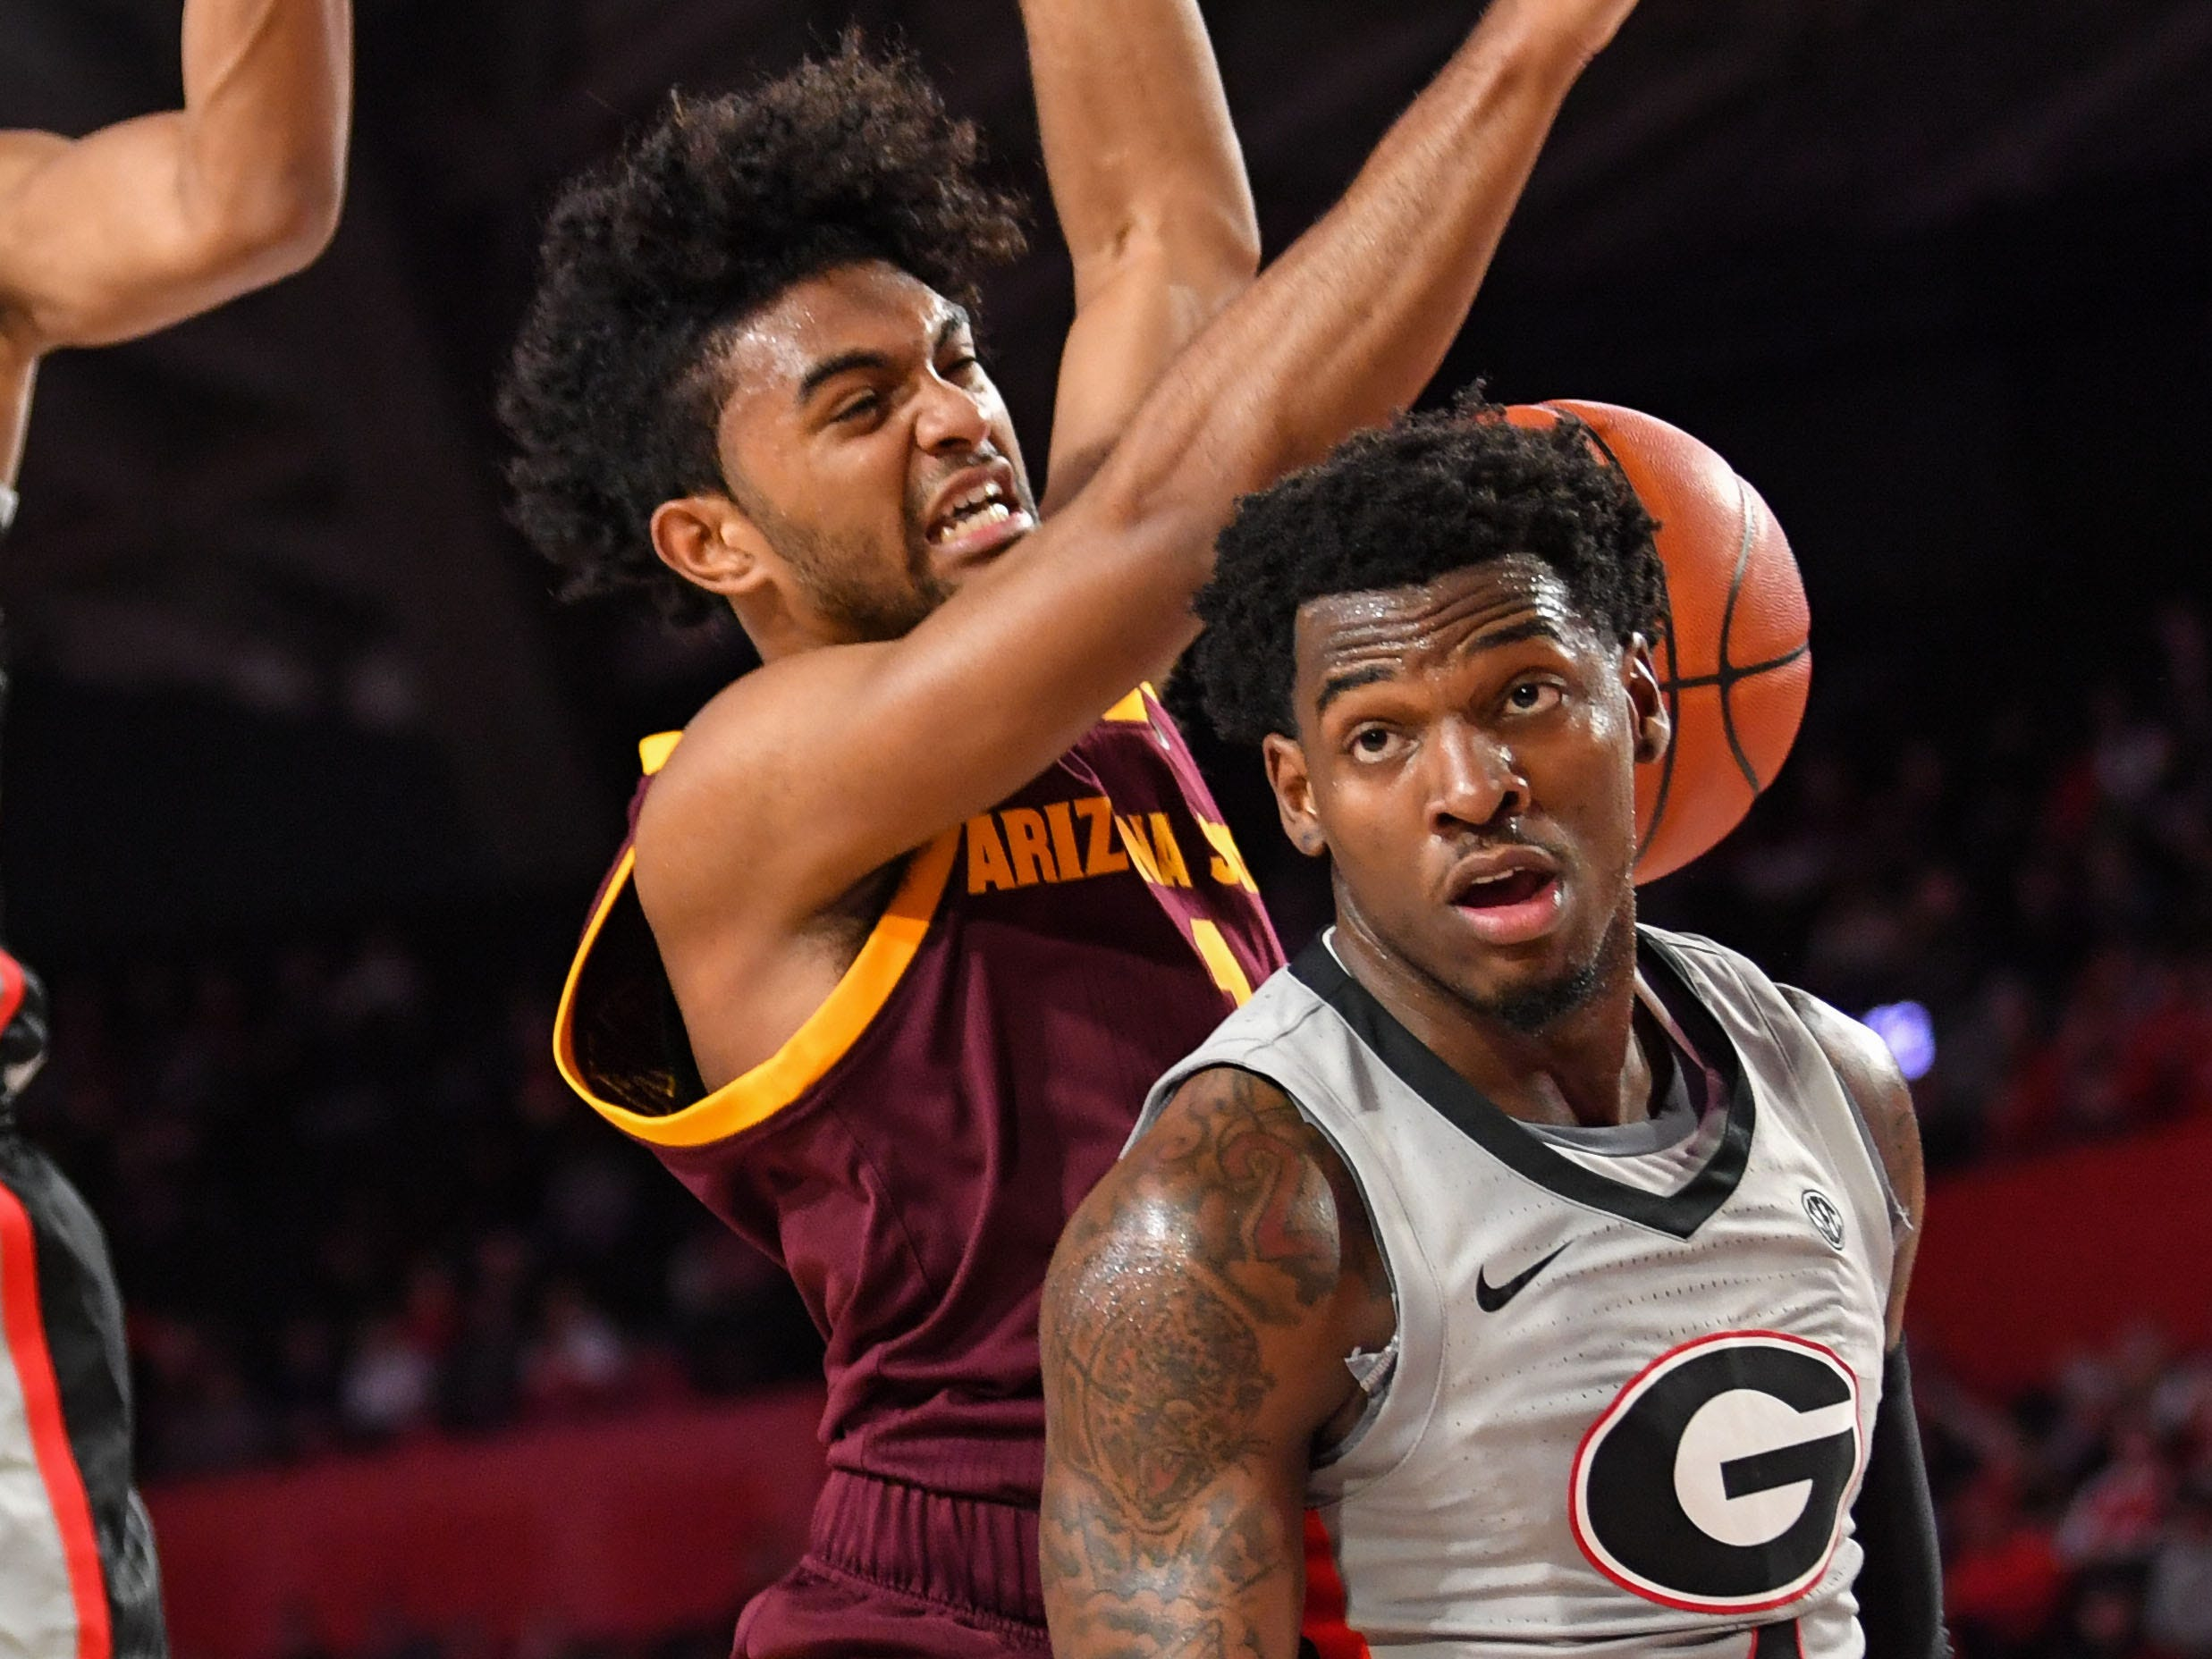 Dec 15, 2018; Athens, GA, USA; Arizona State Sun Devils guard Remy Martin (1) loses the ball to the defense of Georgia Bulldogs guard Tyree Crump (4) during the first half at Stegeman Coliseum.